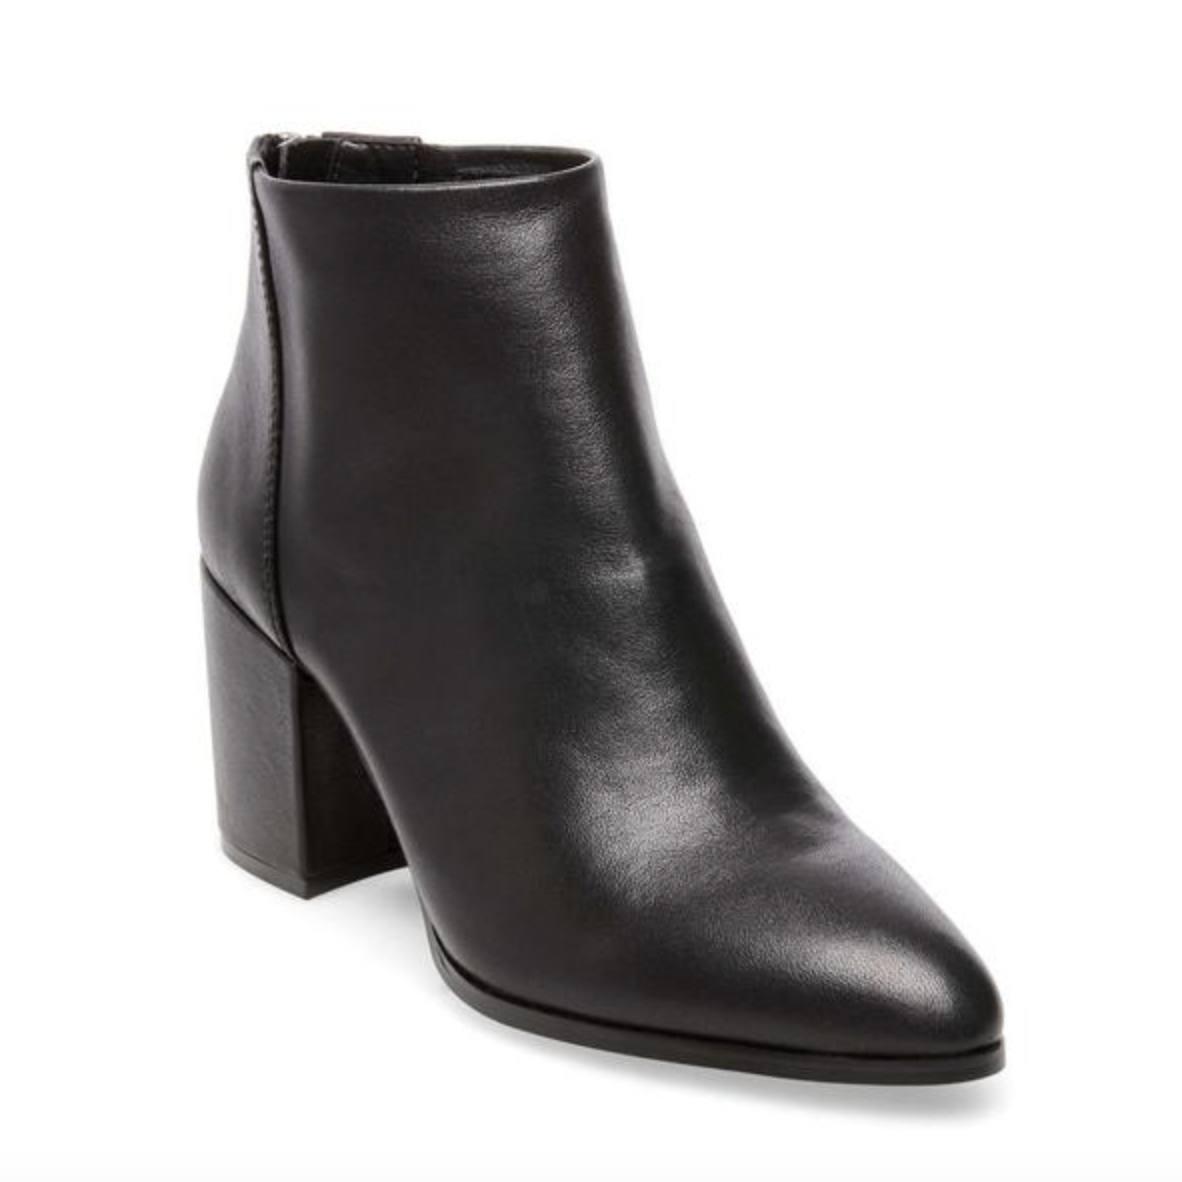 Steve Madden Leather Booties $131.95